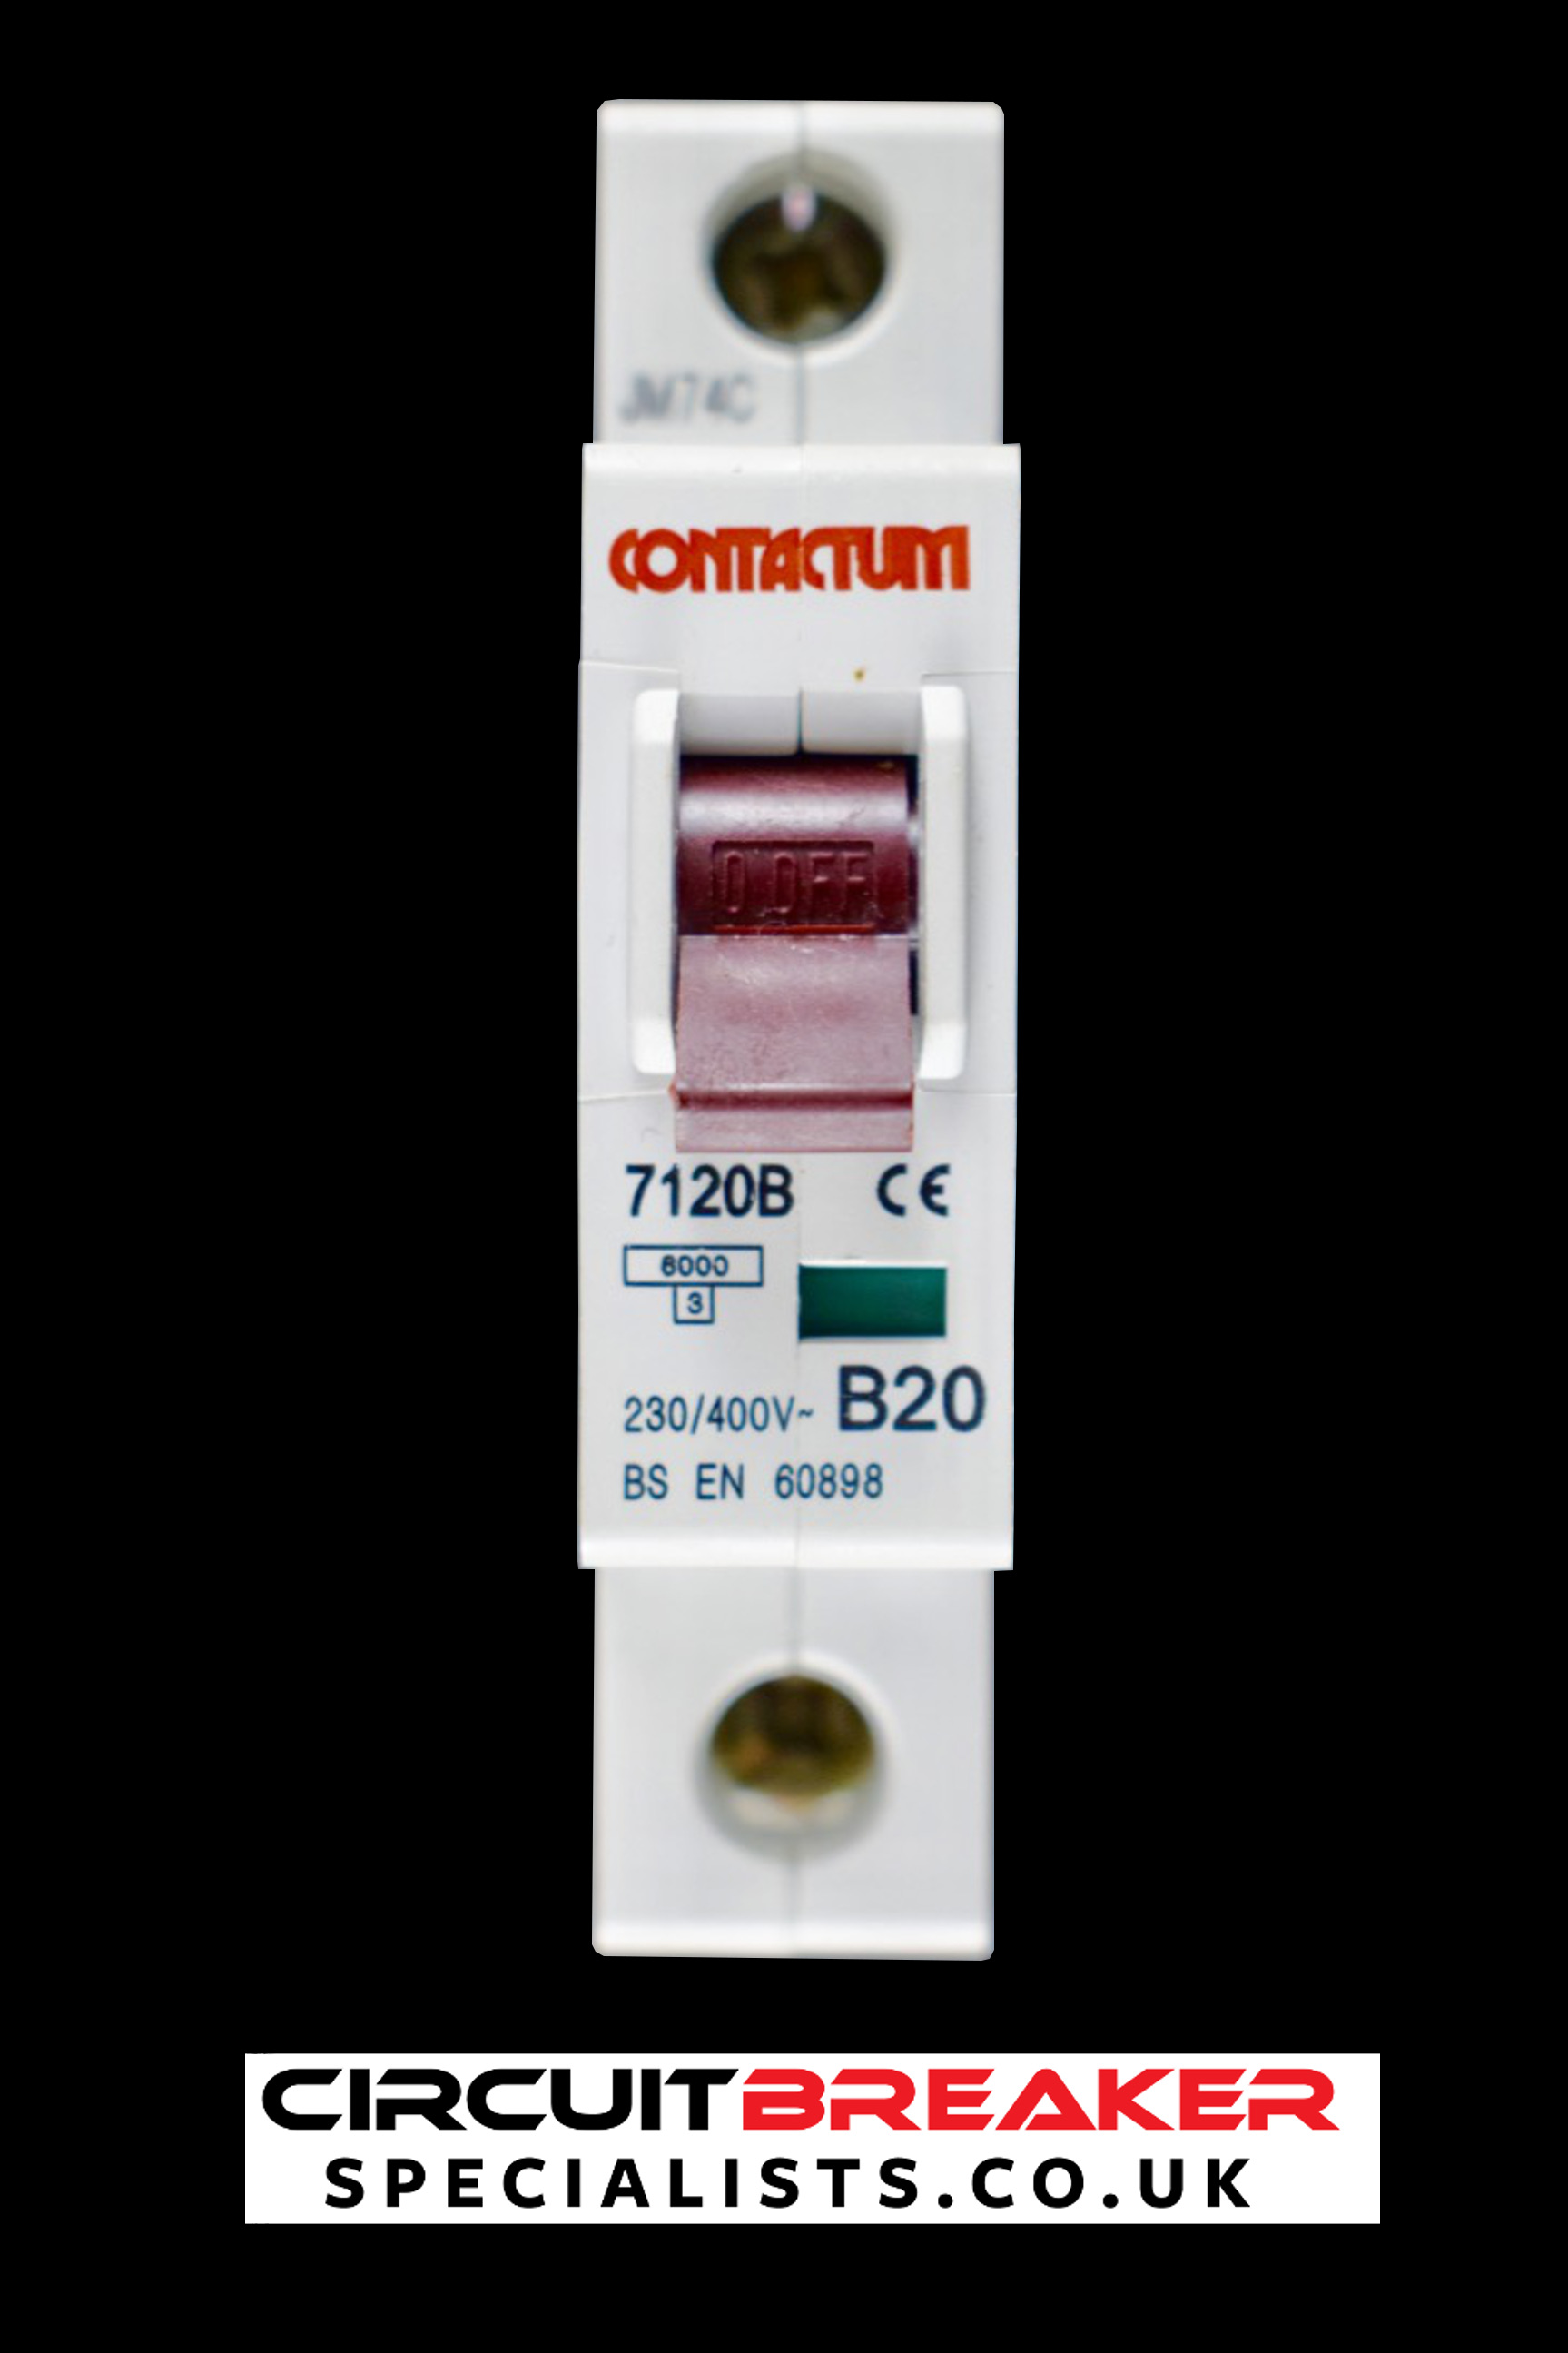 Circuit Breaker Specialists 20a 400v Onoff Mcb With Cover Buy Contactum B 20 Amp 7120b Red